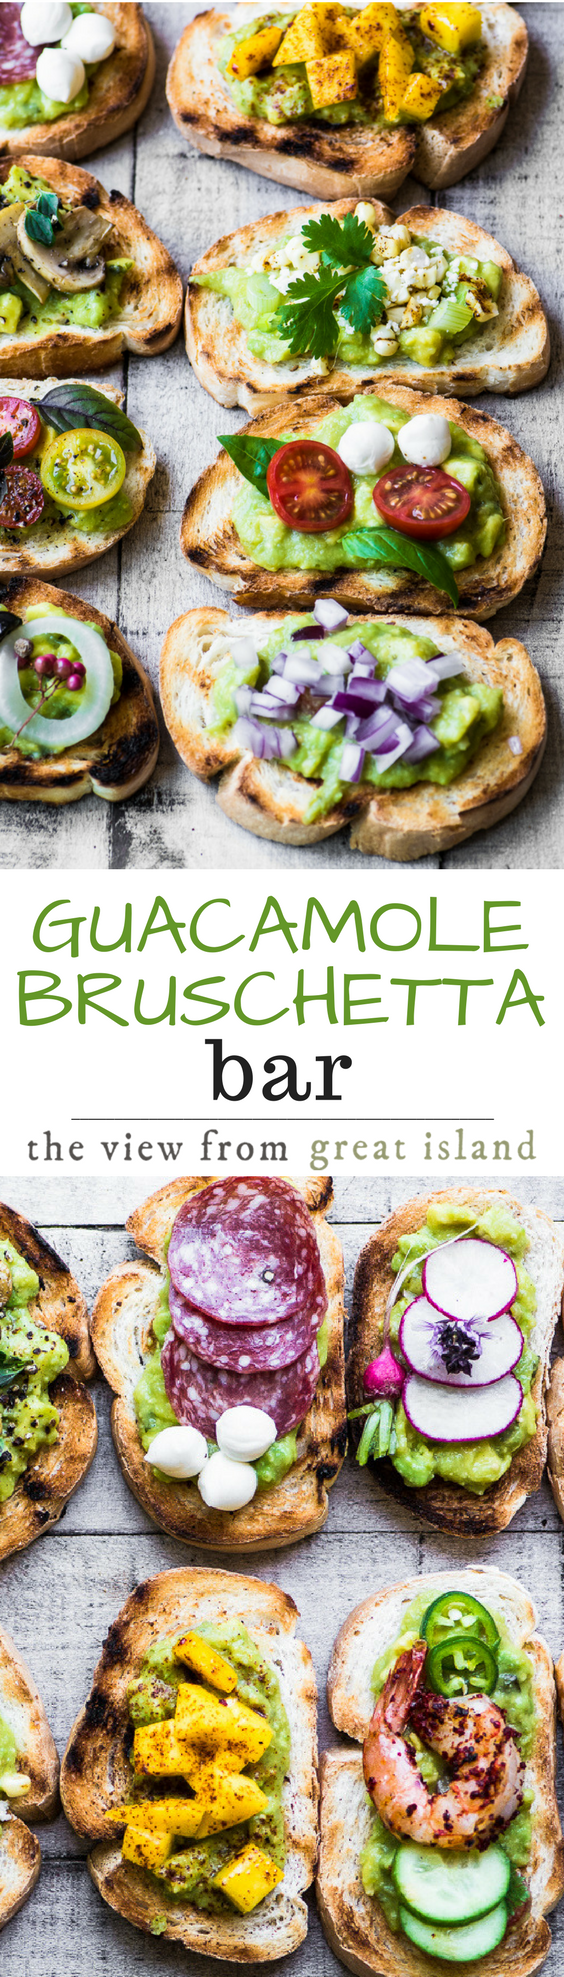 Guacamole Bruschetta Bar ~ admit it, you've always wanted to eat avocado toast for dinner, and this meal is healthy and lots of fun! #appetizer #avocados #guacamole #guacamoletoast #gameday #partyfood #healthy #dinner #healthysnack